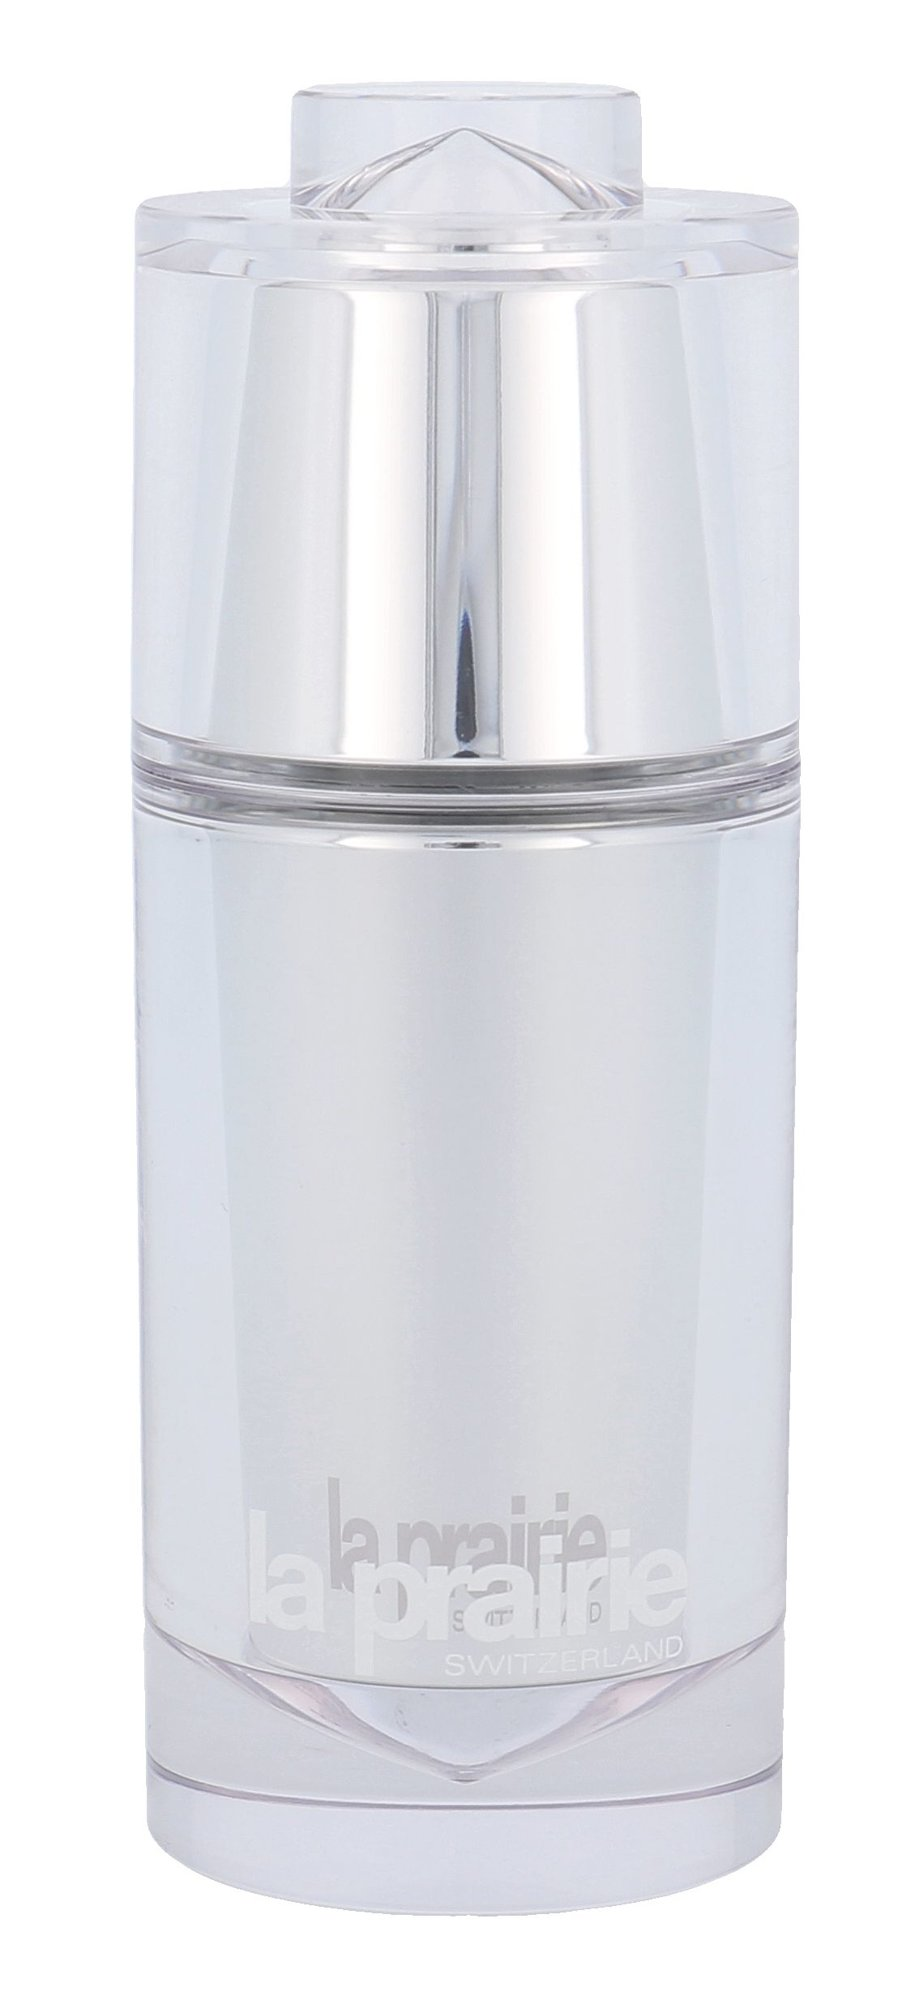 La Prairie Cellular Cosmetic 15ml